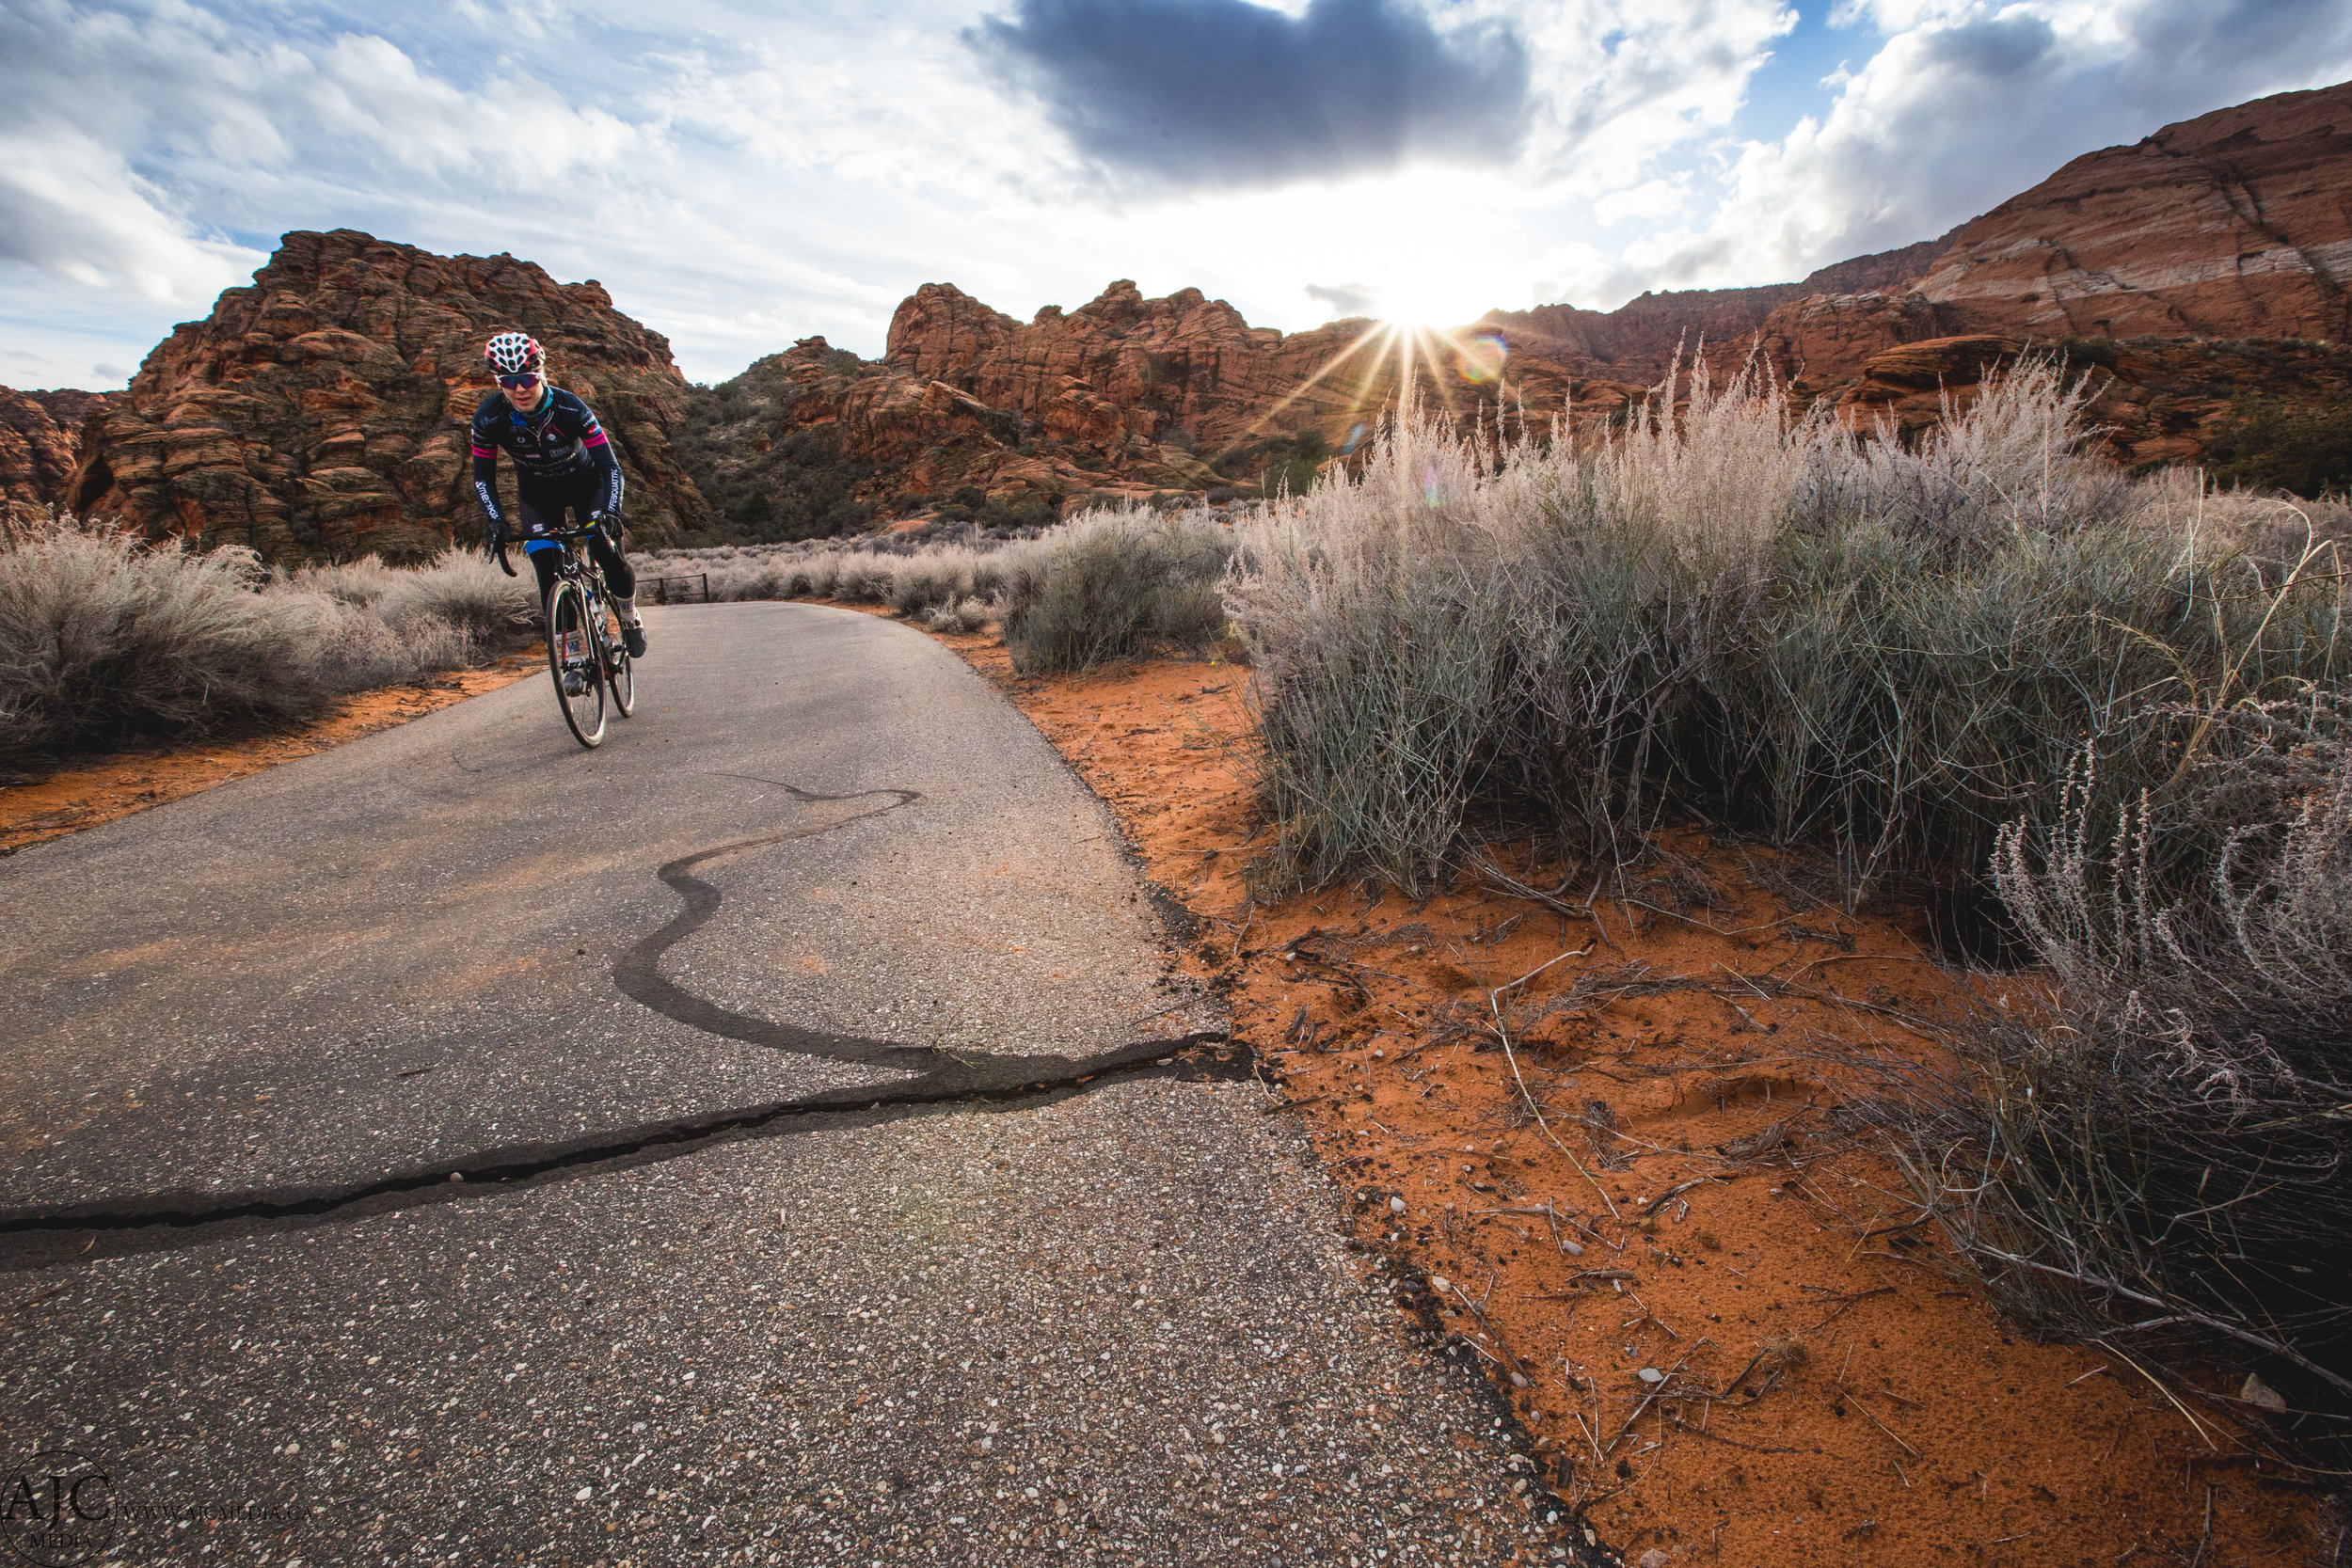 Snow Canyon has some great bike trails too...for road riding mostly though.